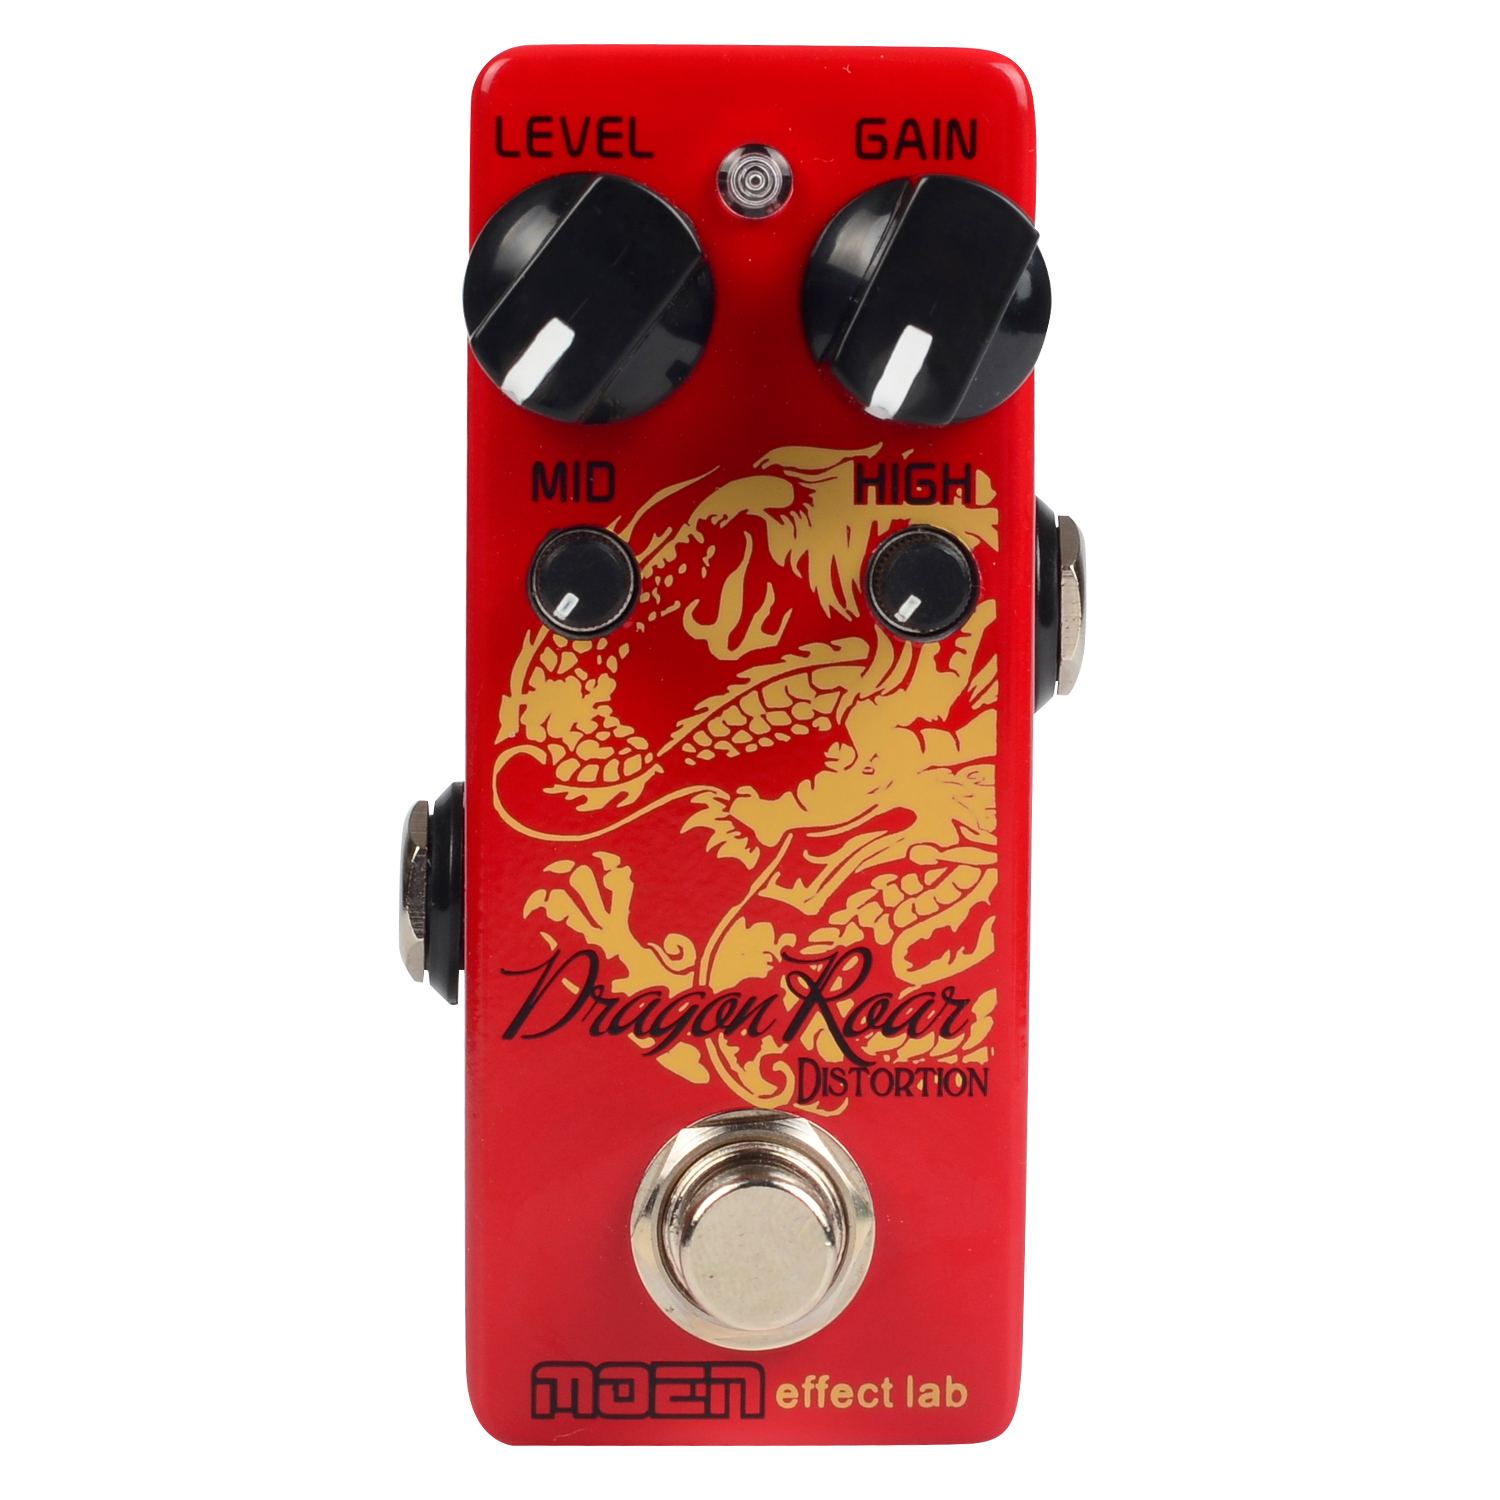 Moen Dragon Roar Distortion Guitar Effect Pedal Level Gain Mid High Controls Ture Bypass Mini Stompbox for Electric Guitar moen compressor guitar effect pedal ture